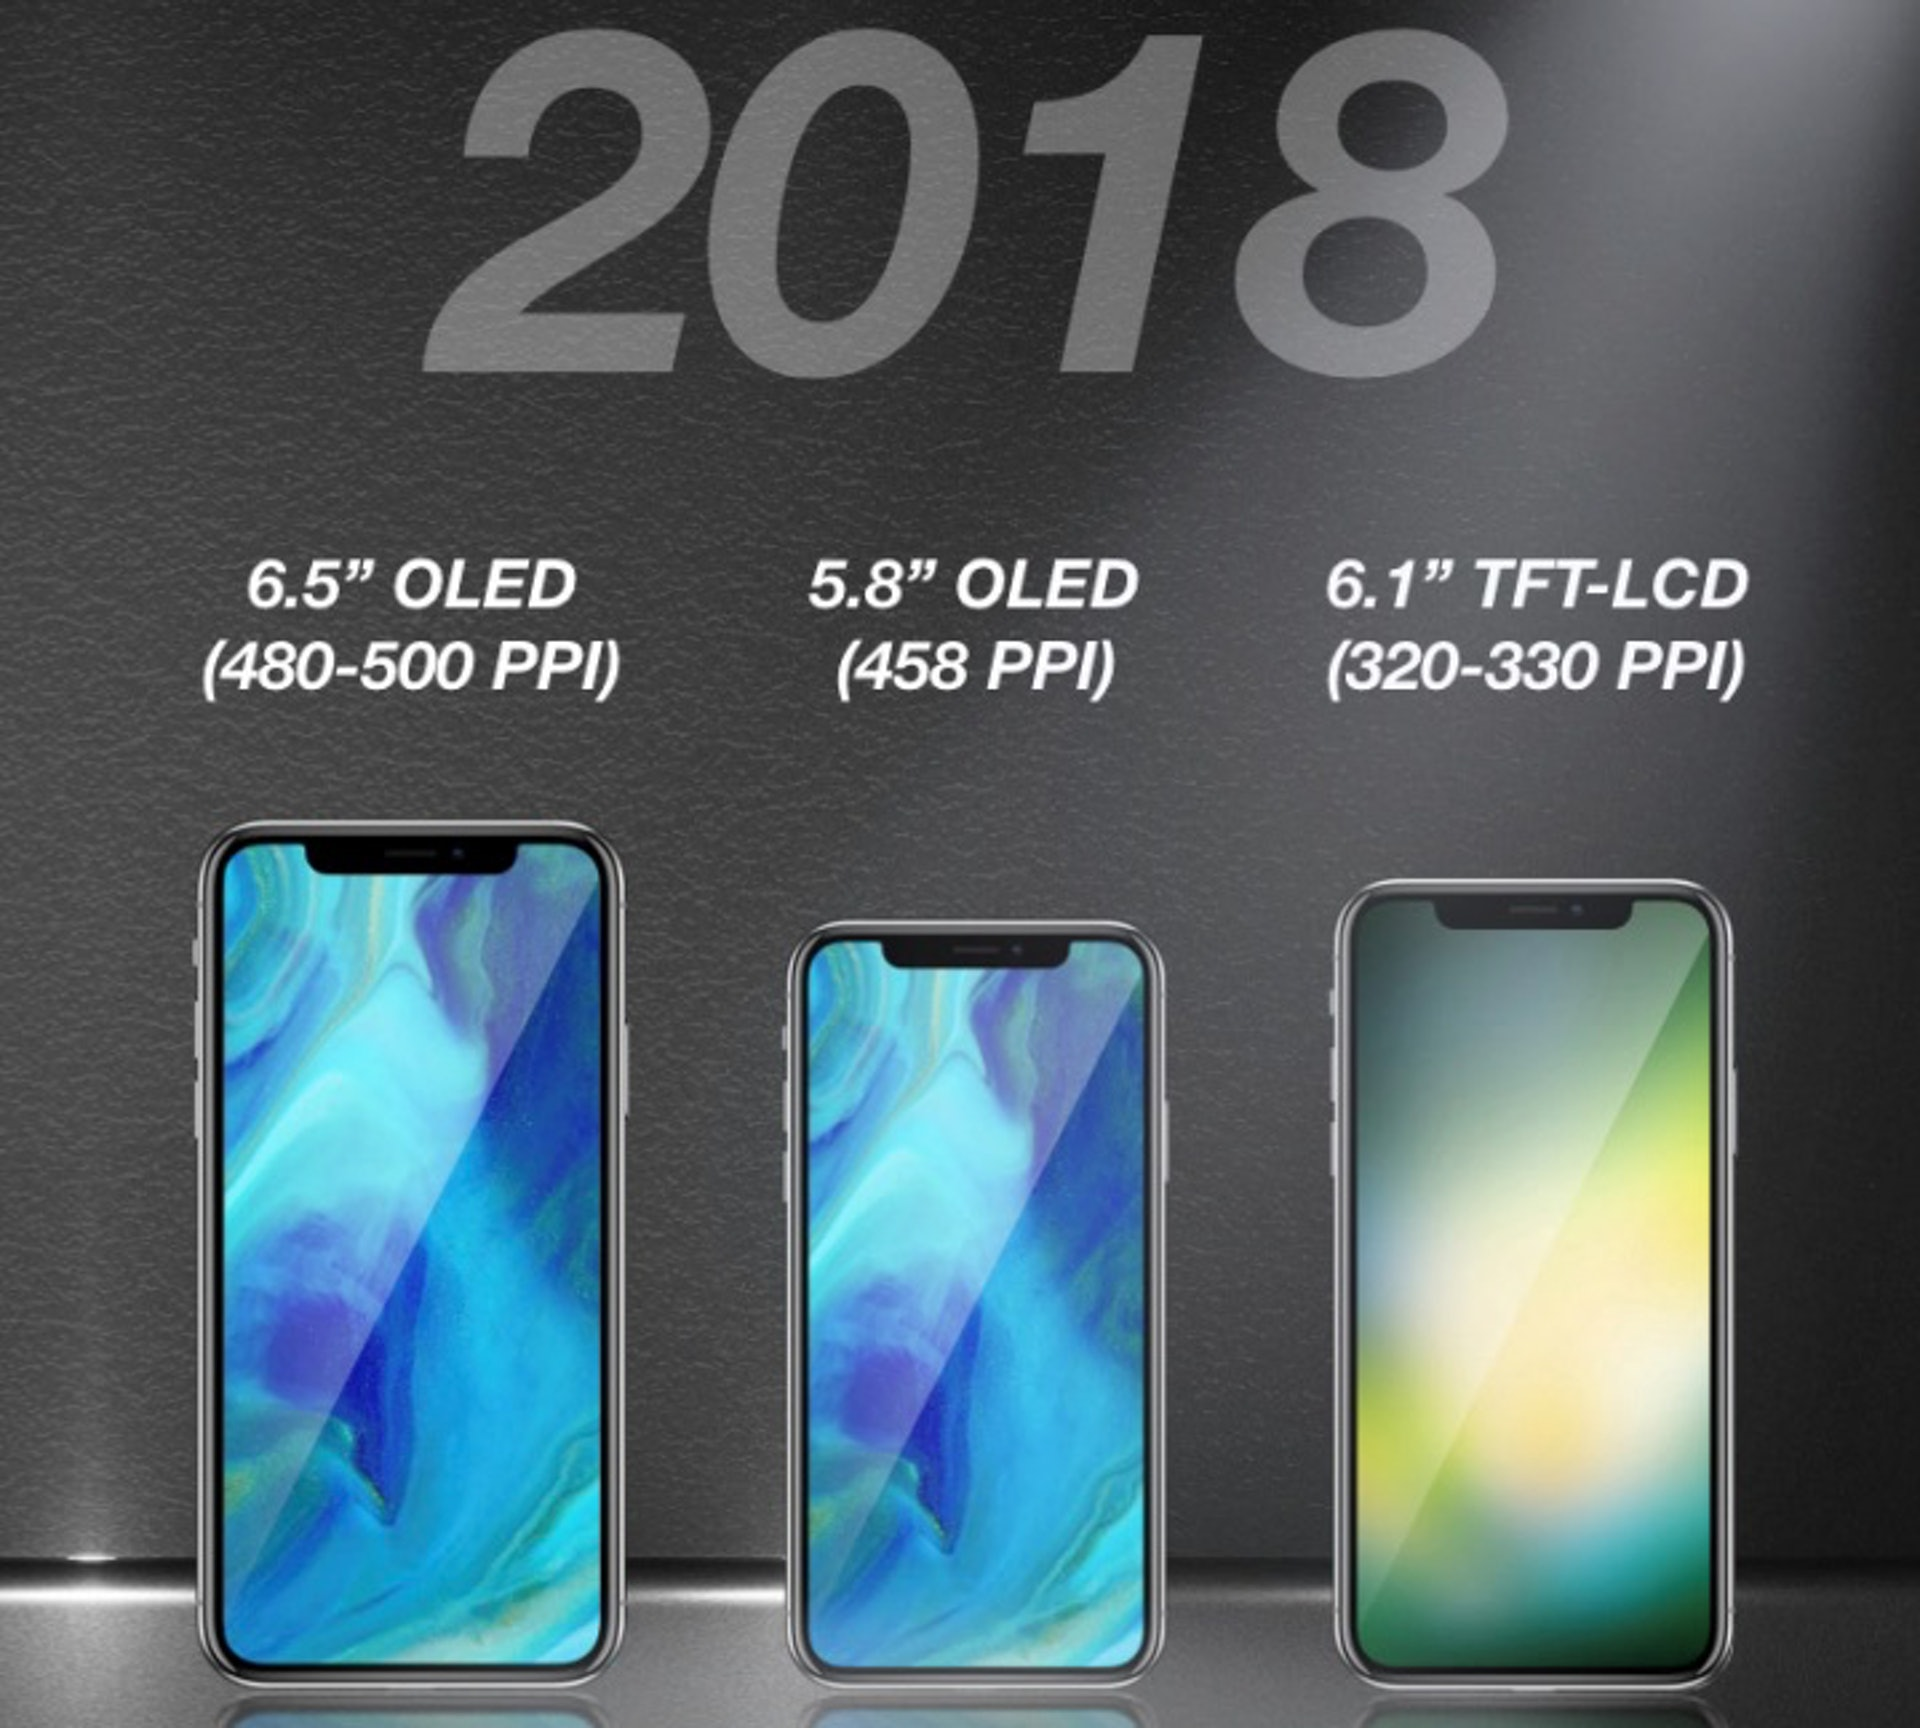 2018 iPhone lineup by KGI Securities analyst Ming-Chi Kuo